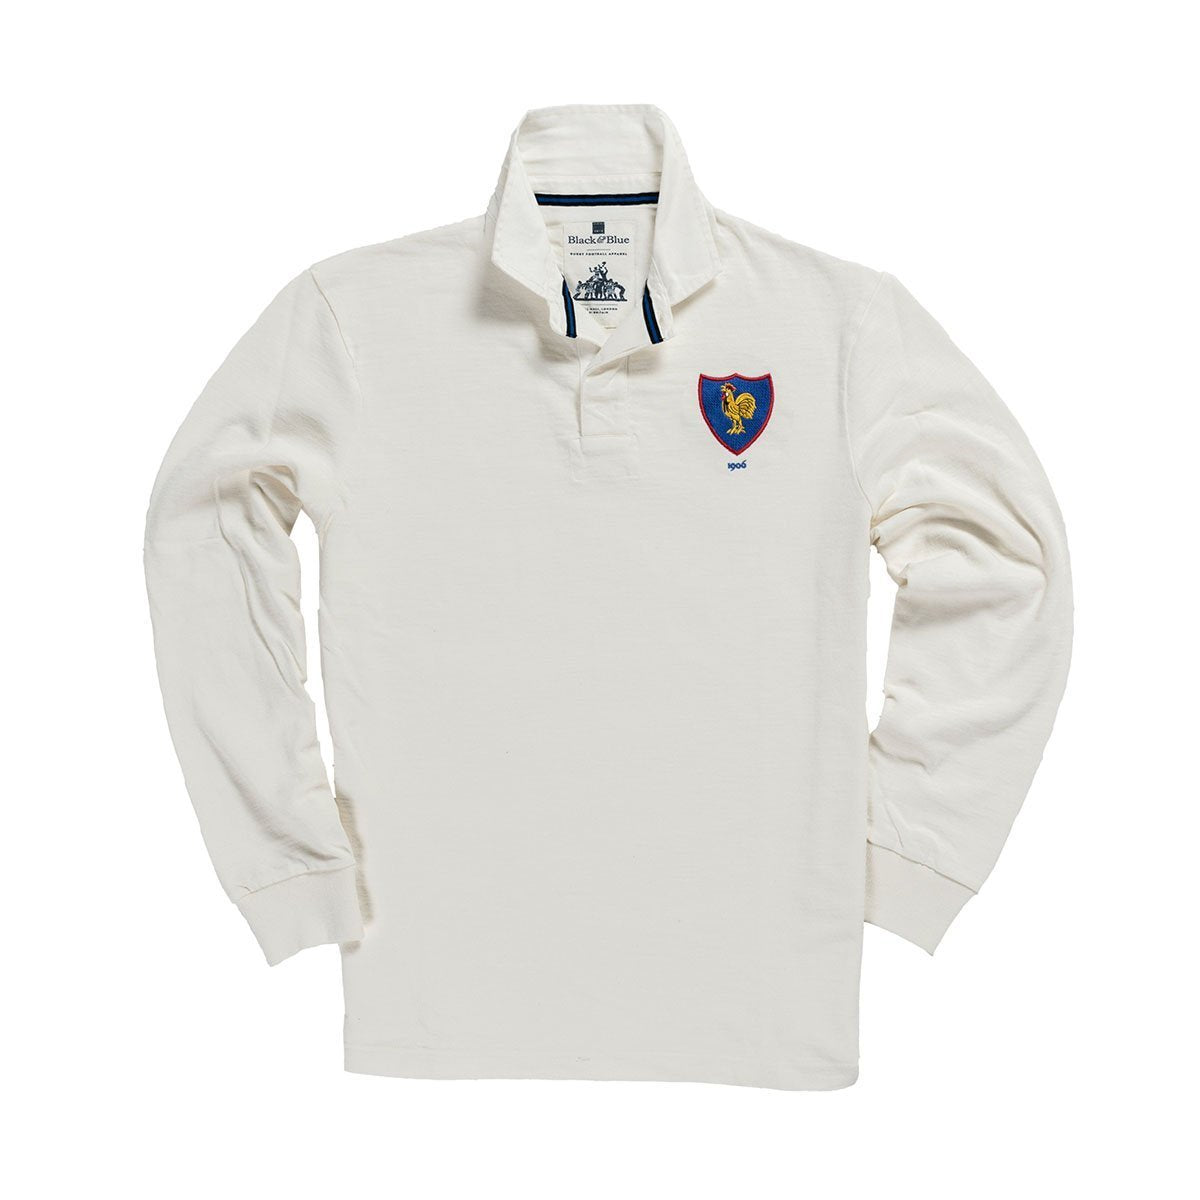 1IN/IAXS, Black & Blue 1871, Ireland 1875 Away Rugby Shirt, White, Vintage, Classic Rugby Shirt